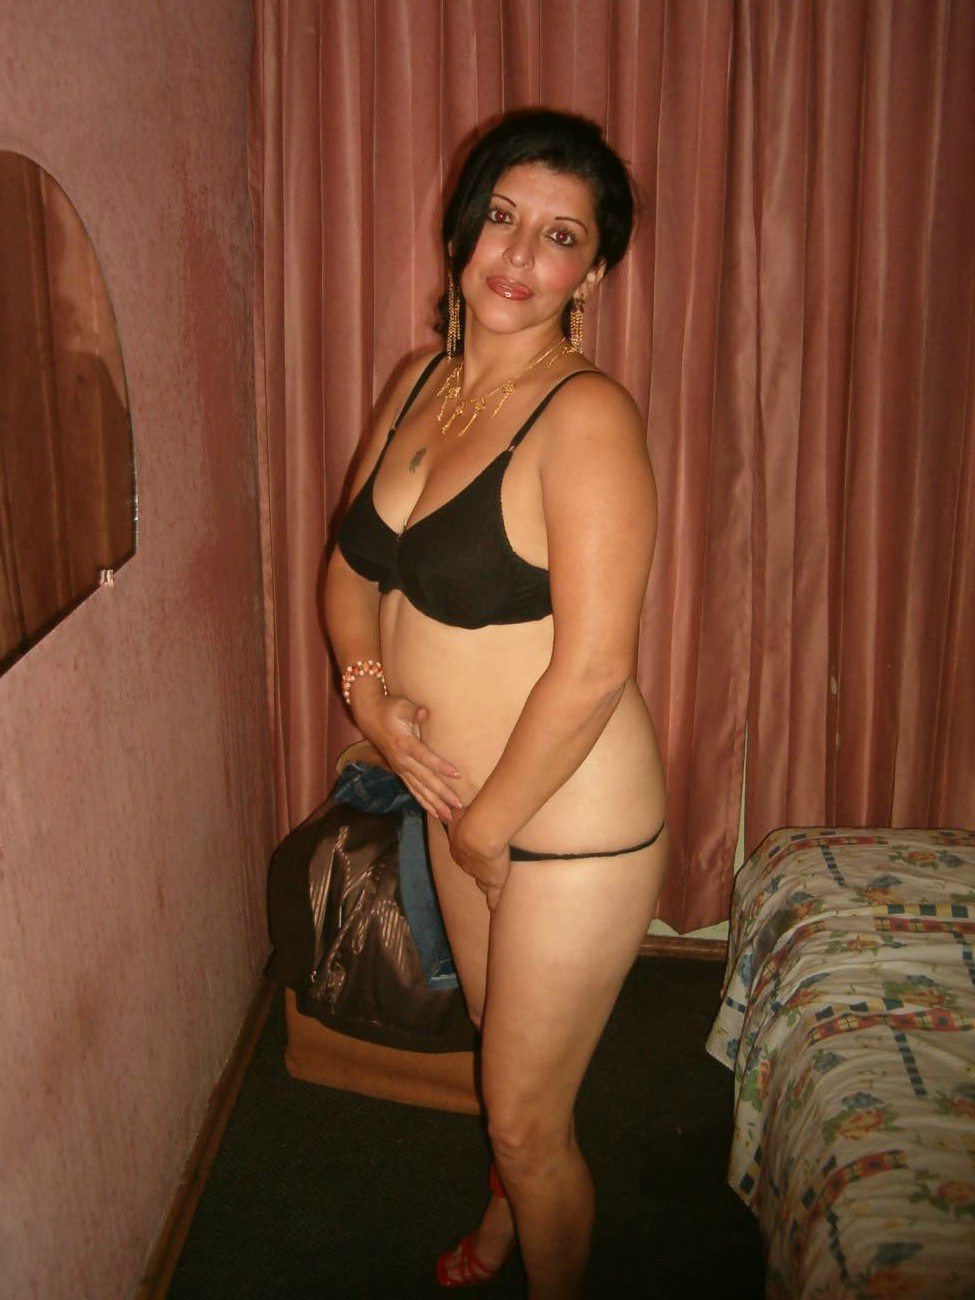 totaly nude indian girls